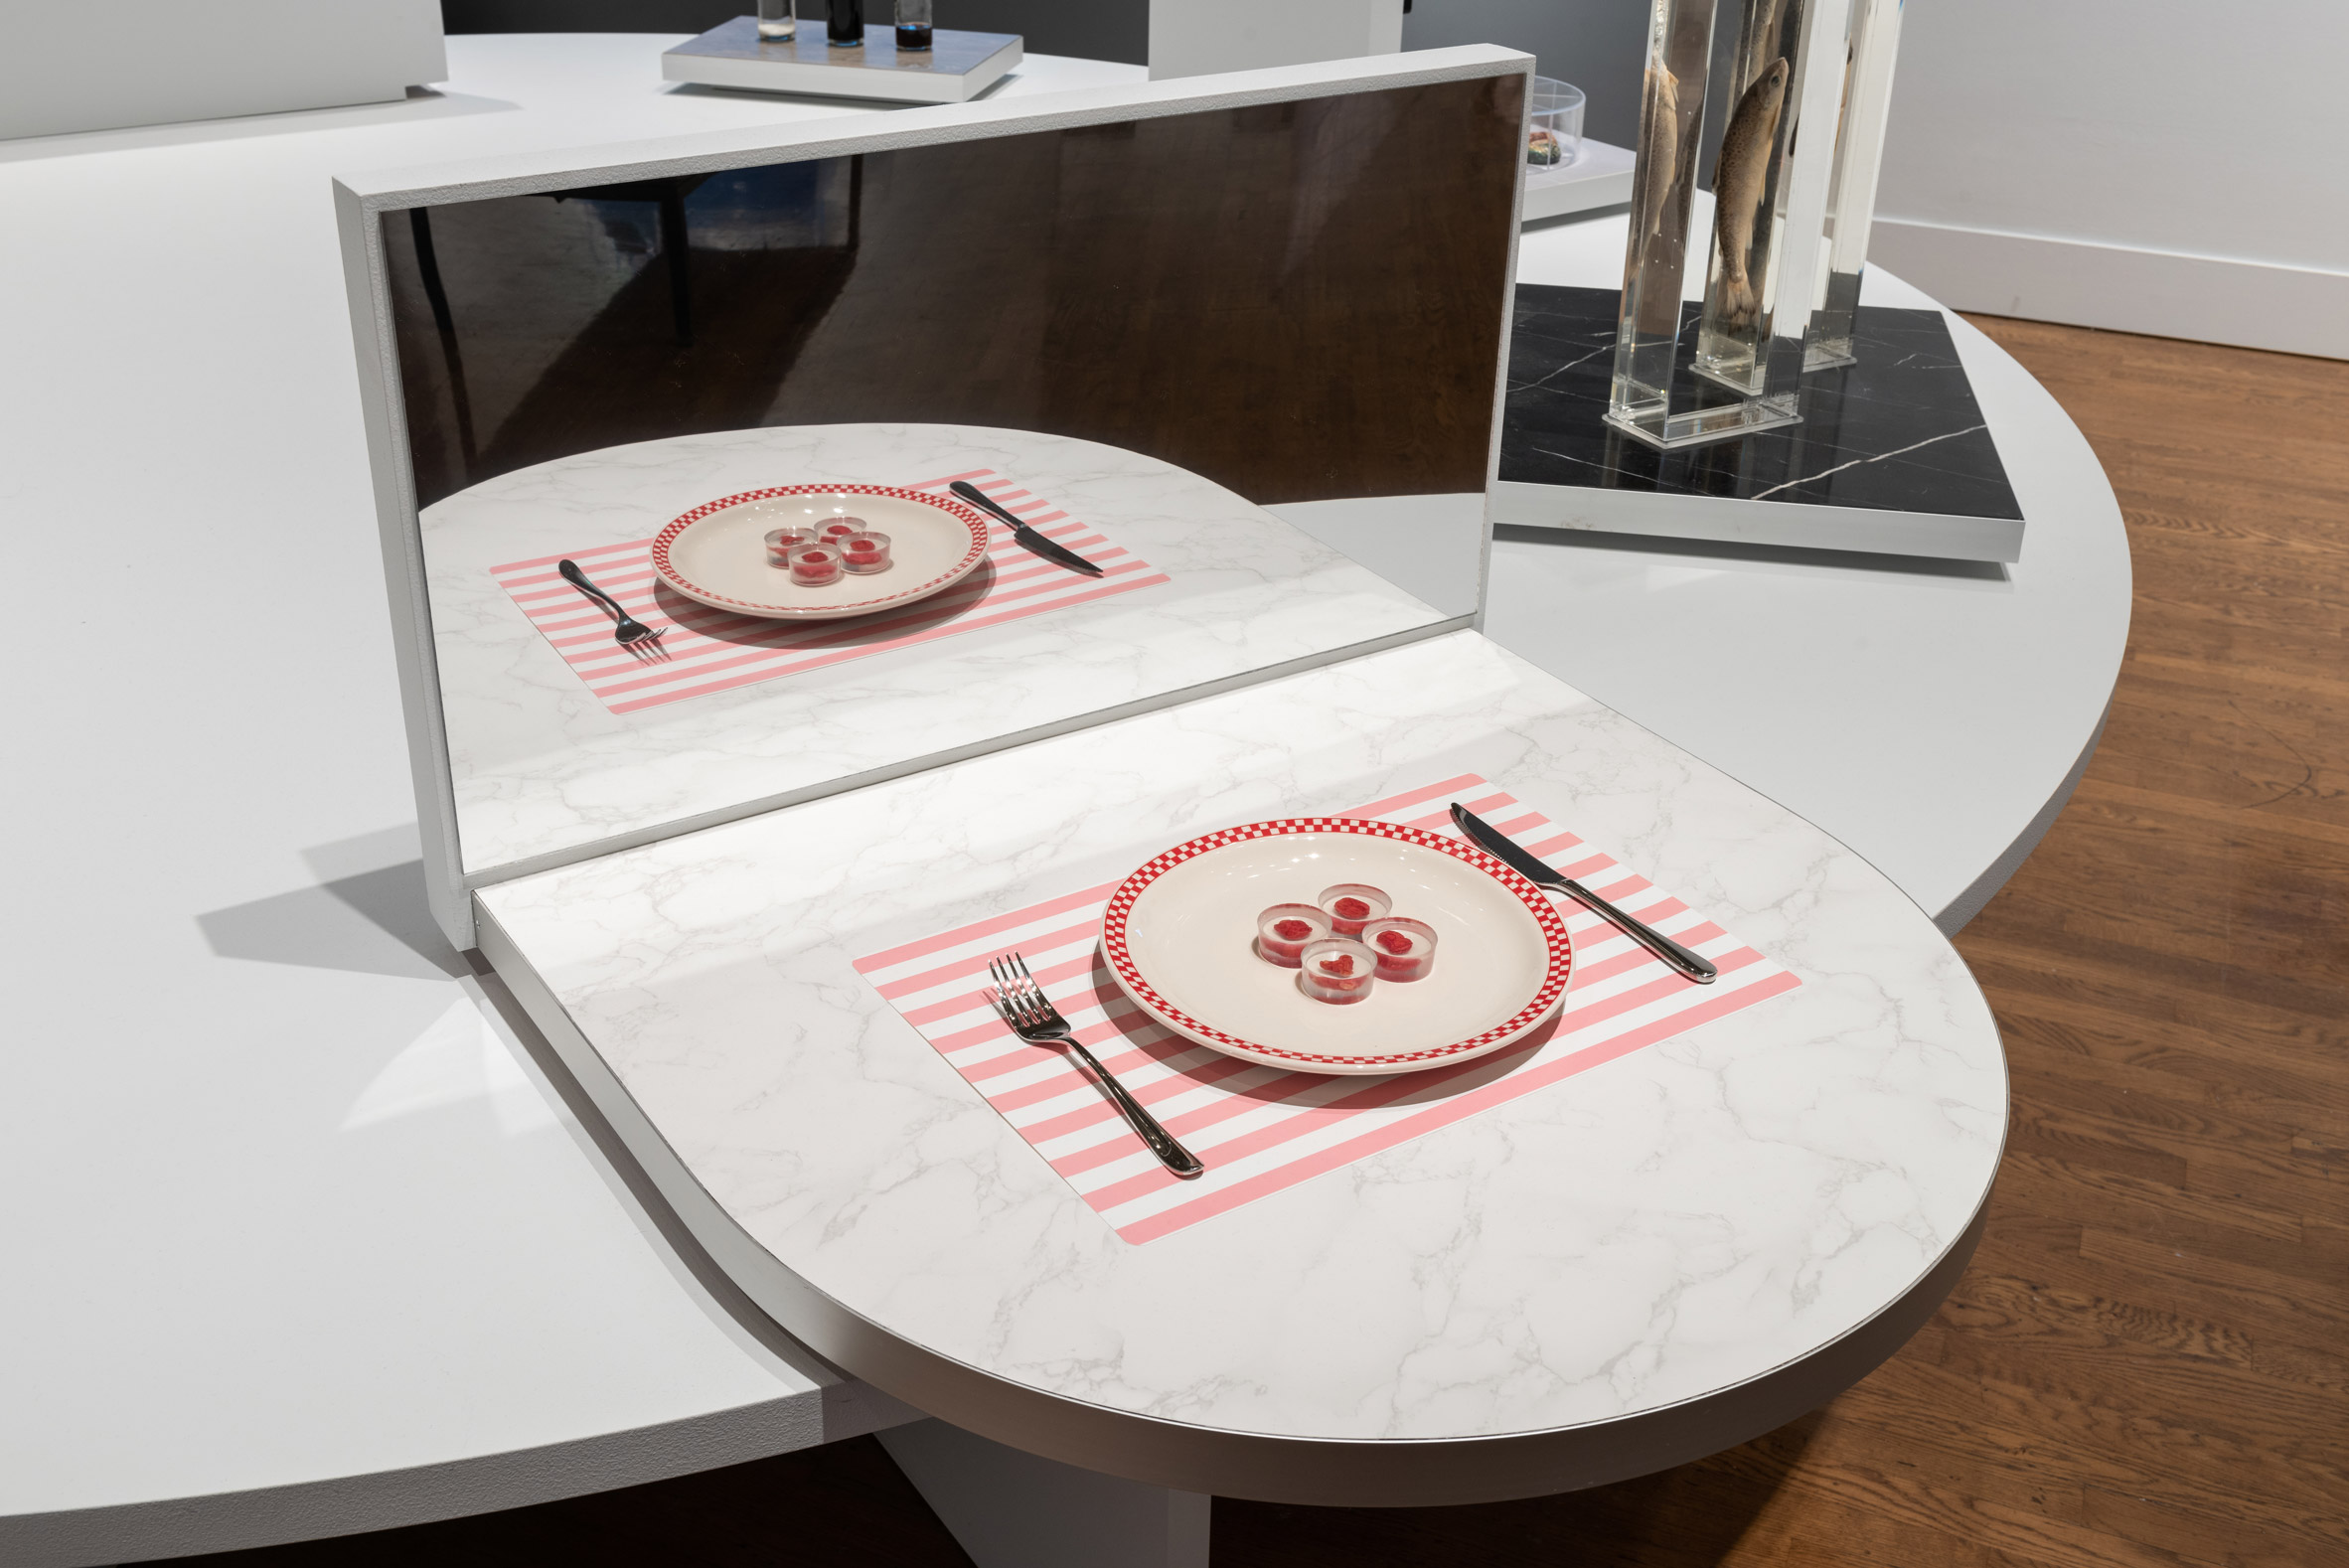 The steak grown from human cells by Andrew Pelling, Orkan Telhan and Grace Knight on display as part of Unlikely Futures at the Philadelphia Museum of Art